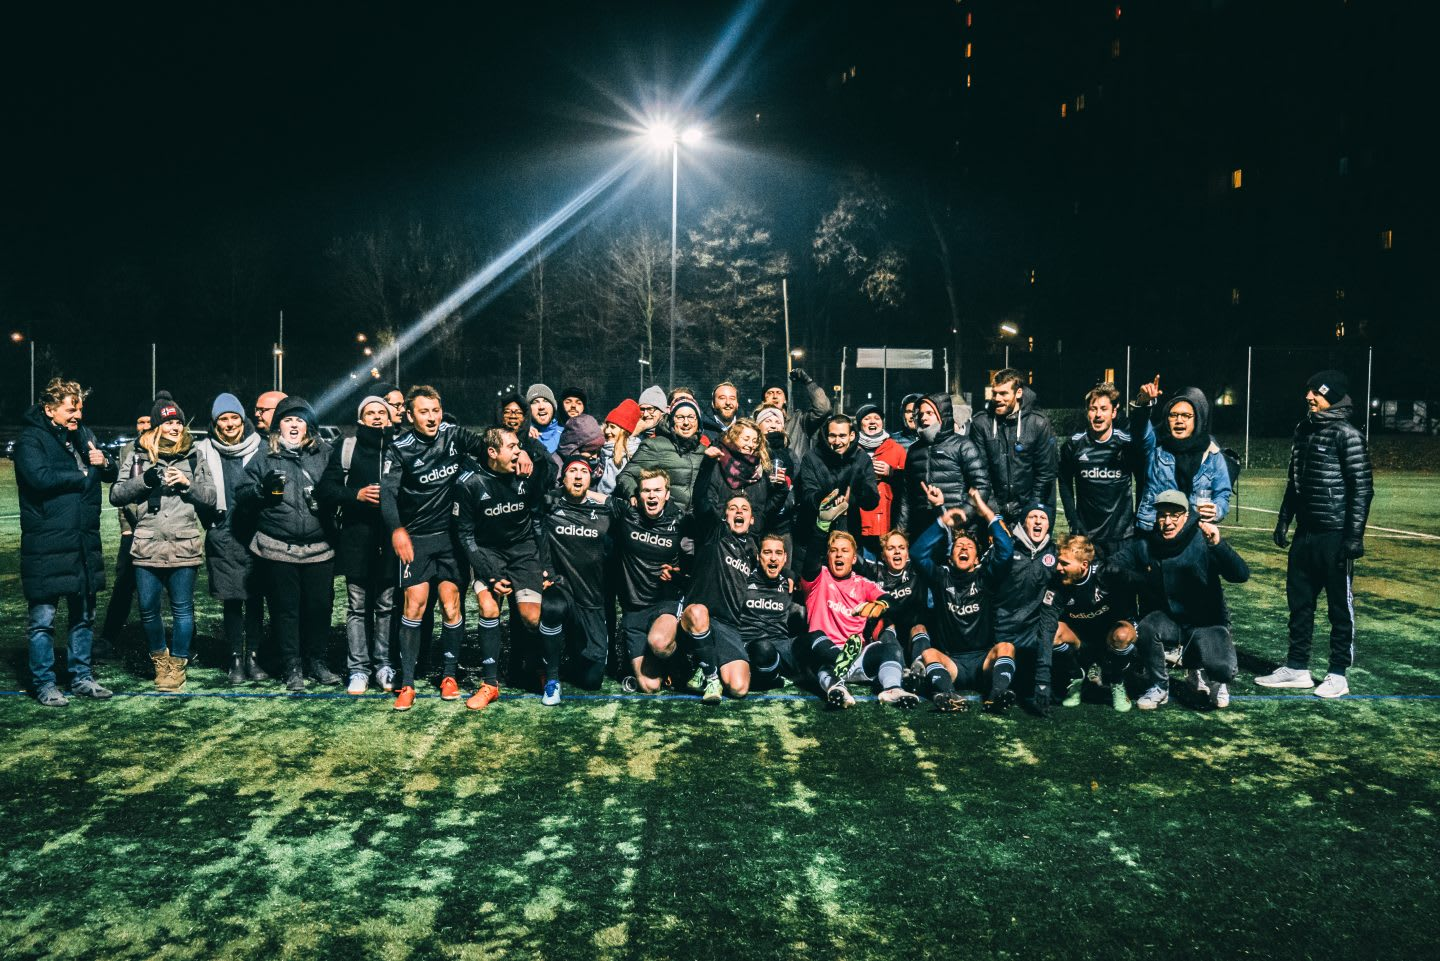 JvM soccer team photo. How to build a creative workplace culture, JvM, workplace, collaboration, creativity, team-building, GamePlan A